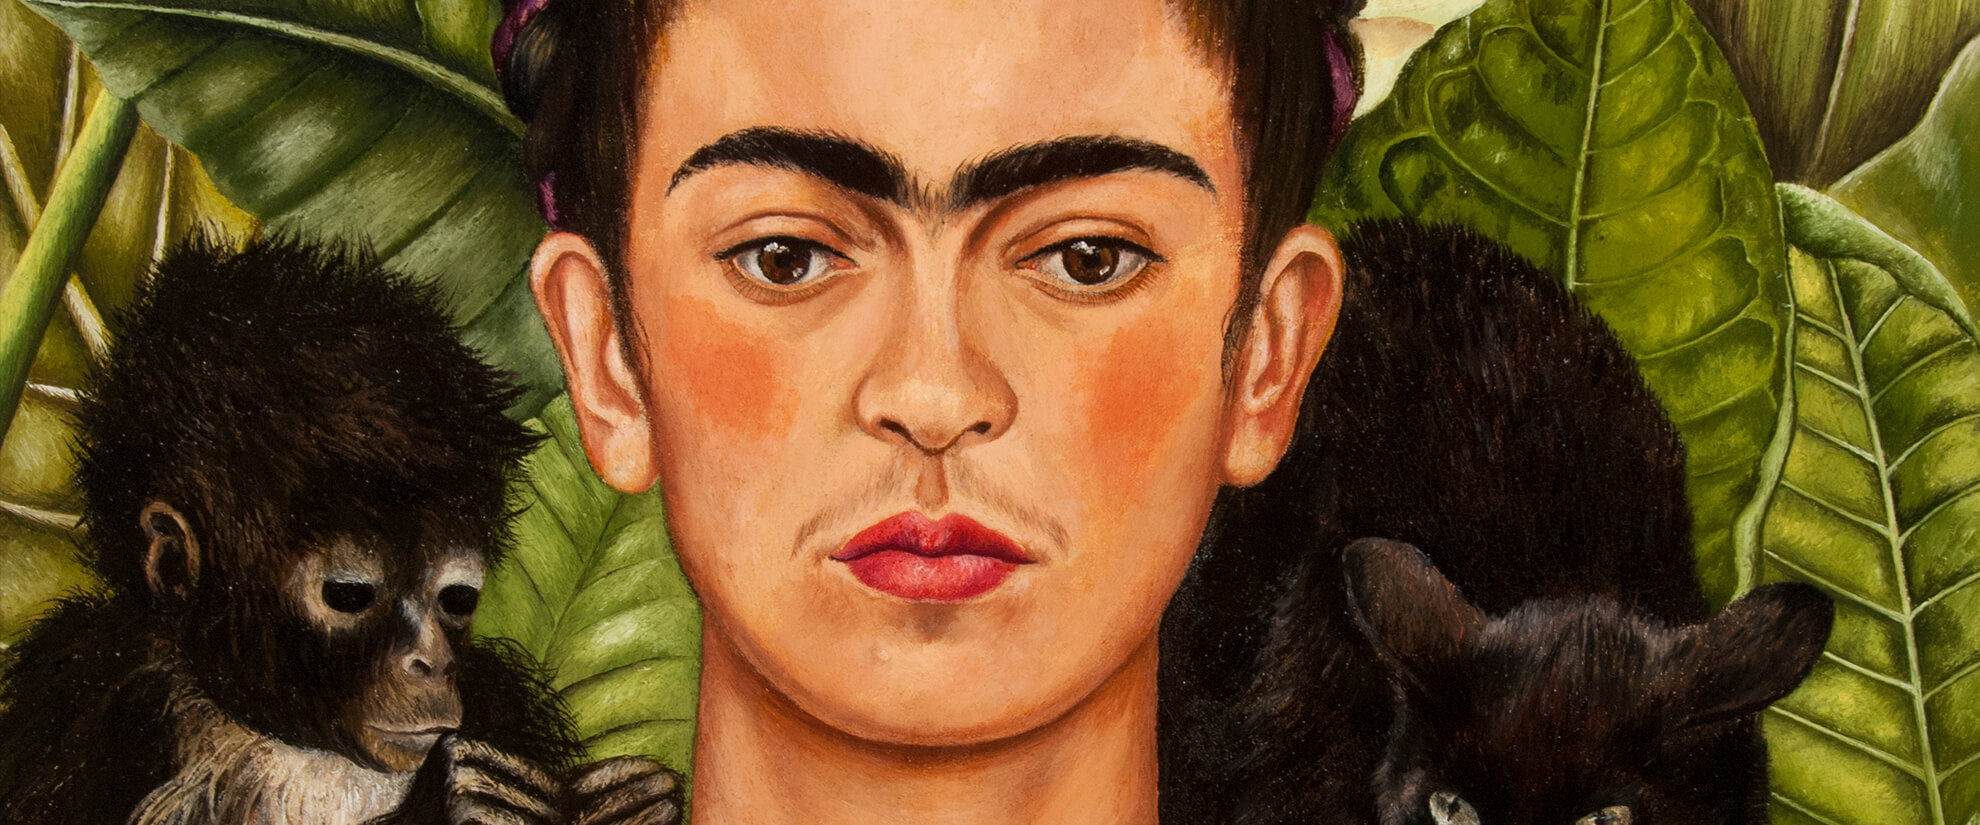 Detail of Frida Kahlo's painting, Self-Portrait with Hummingbird and Thorn Necklace